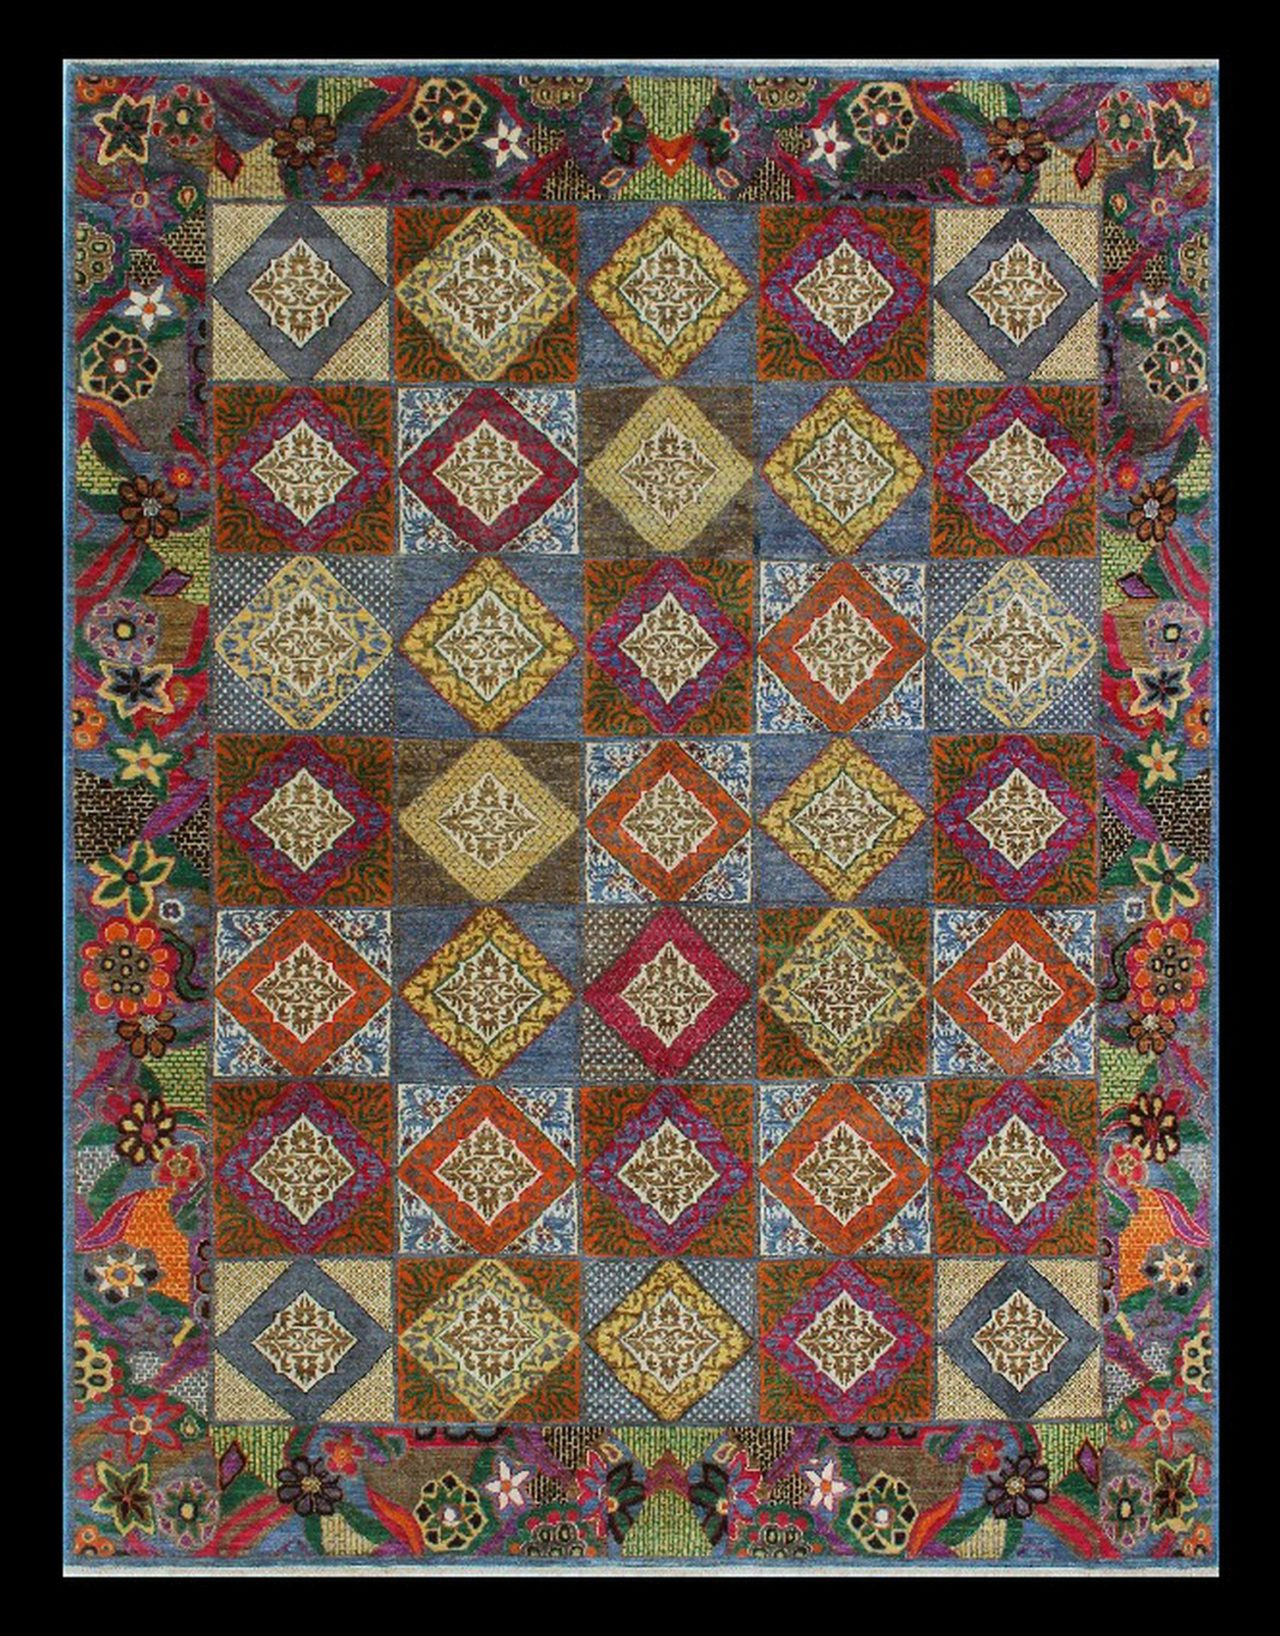 N8658 PAKISTAN ARTS AND CRAFTS 8 X 10.5_1